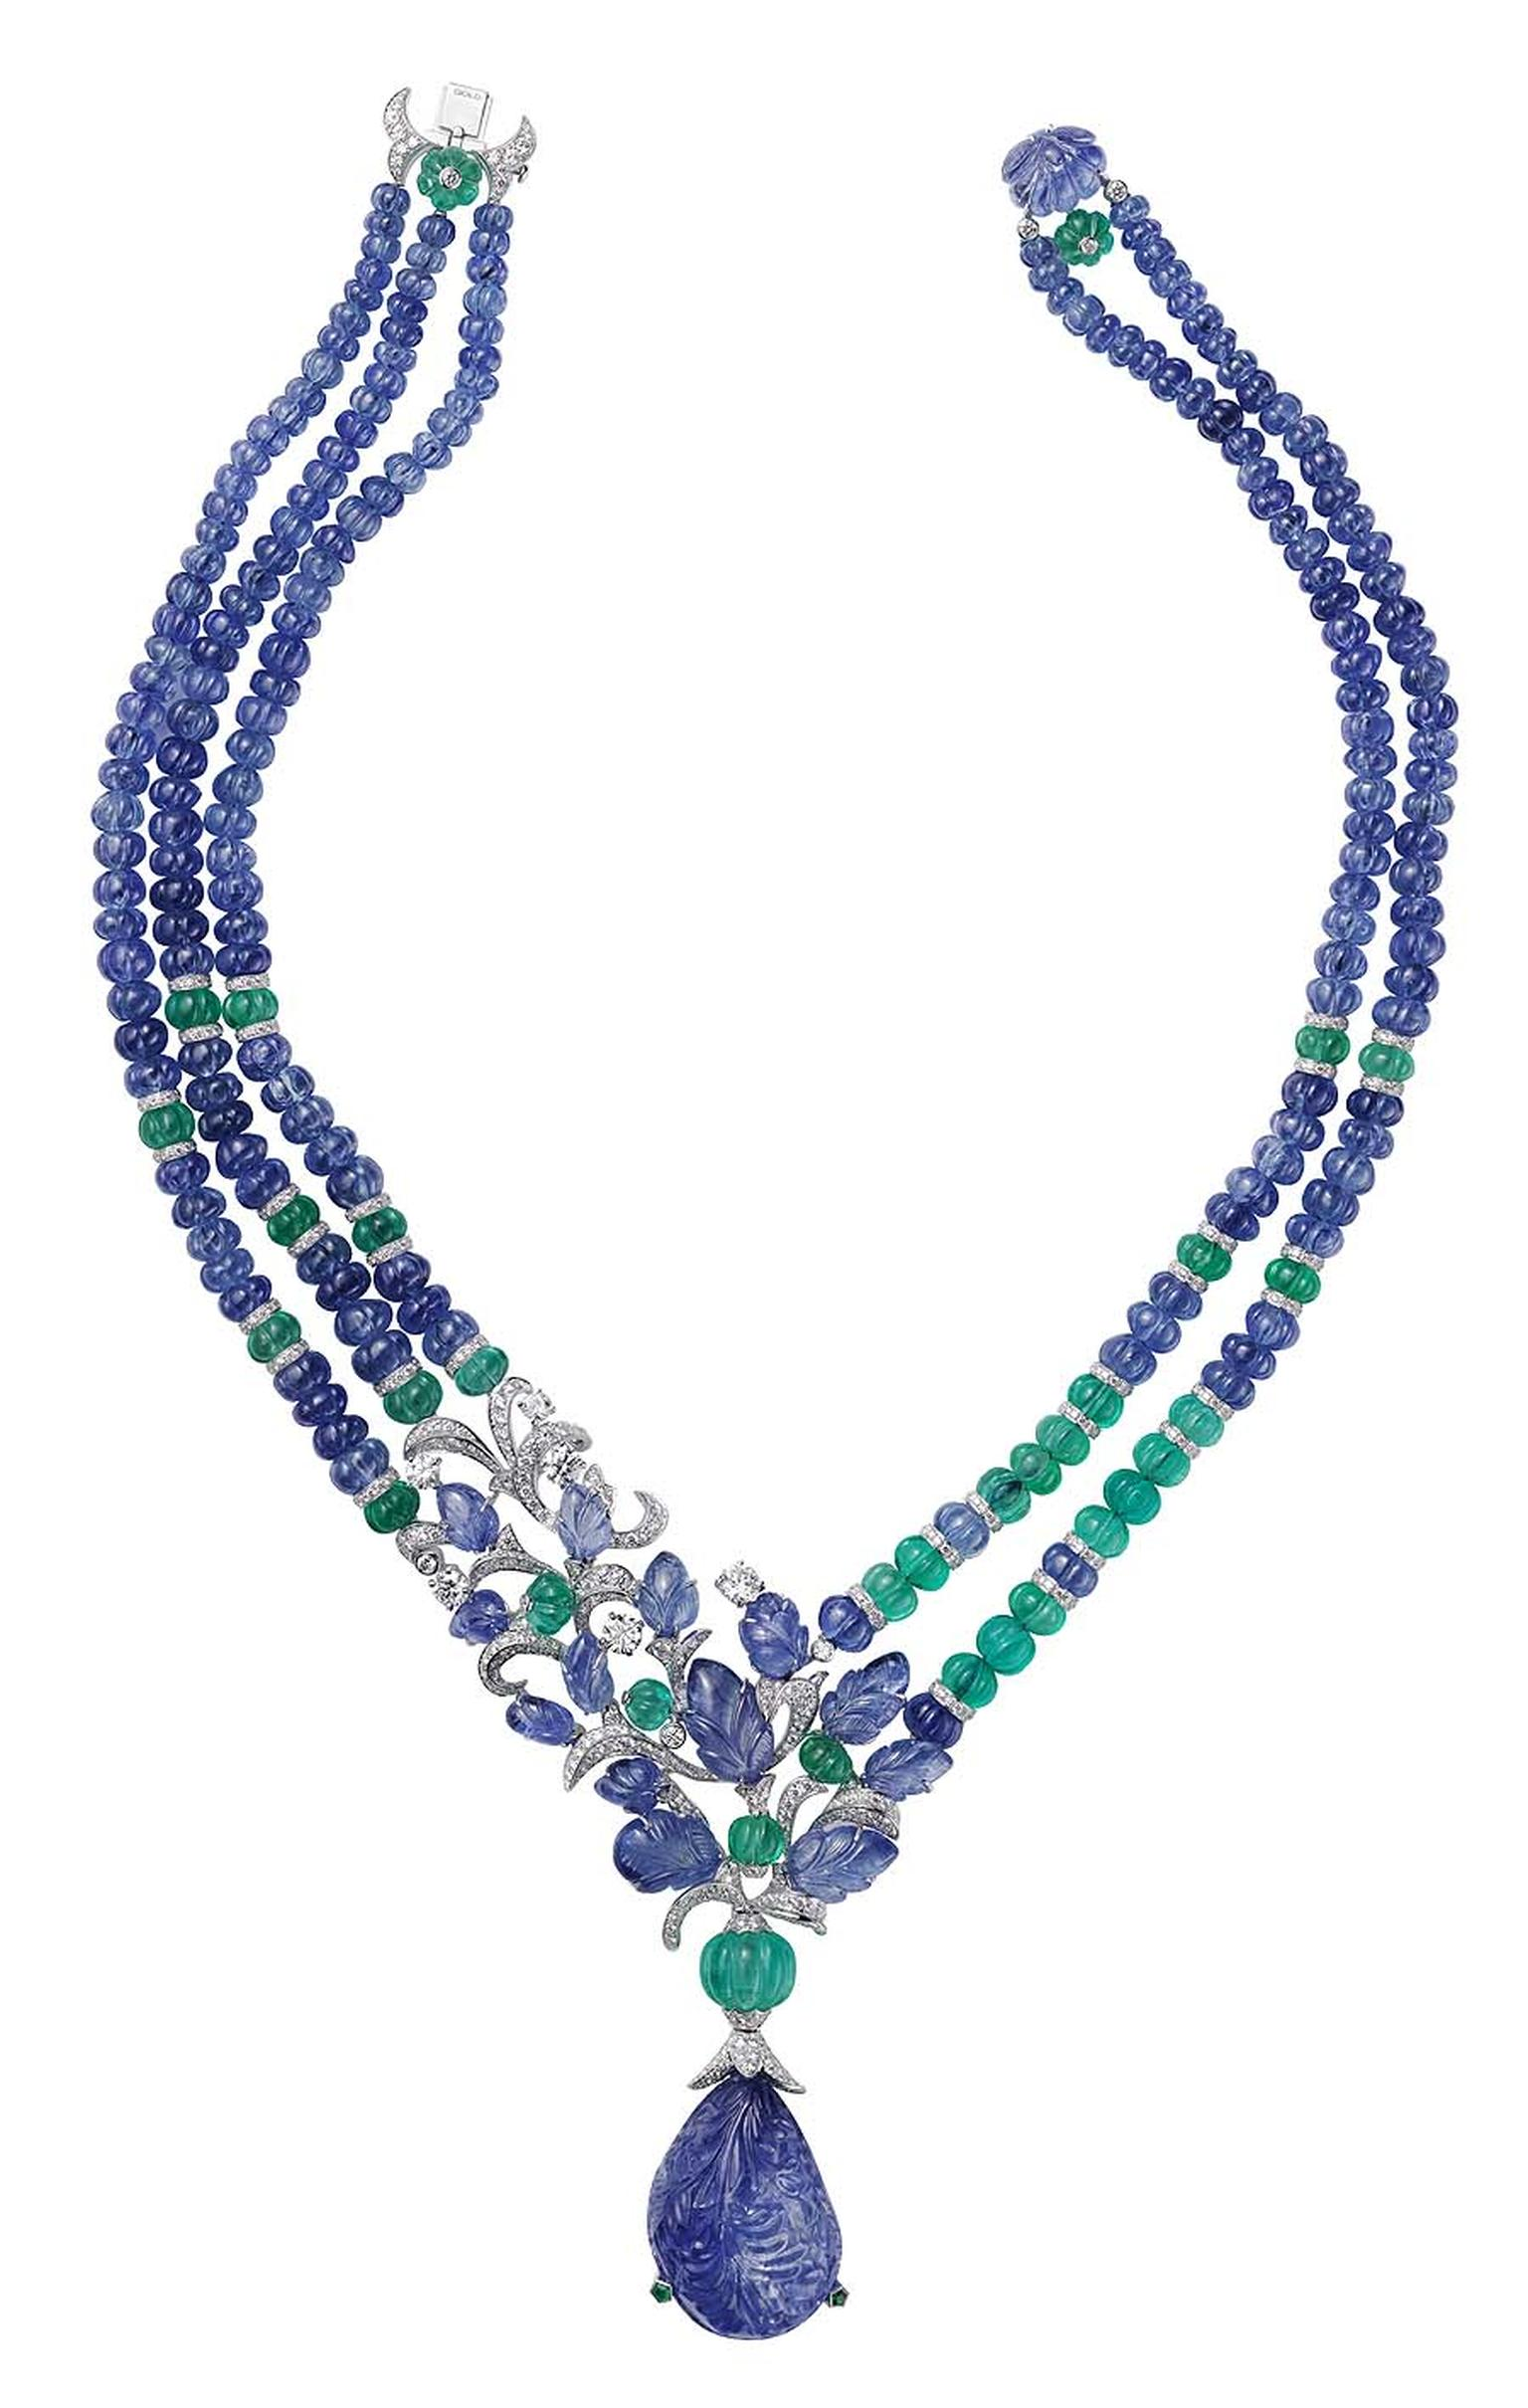 L'Odyssée de Cartier Parcours d'un Style 'India' 'high jewellery necklace